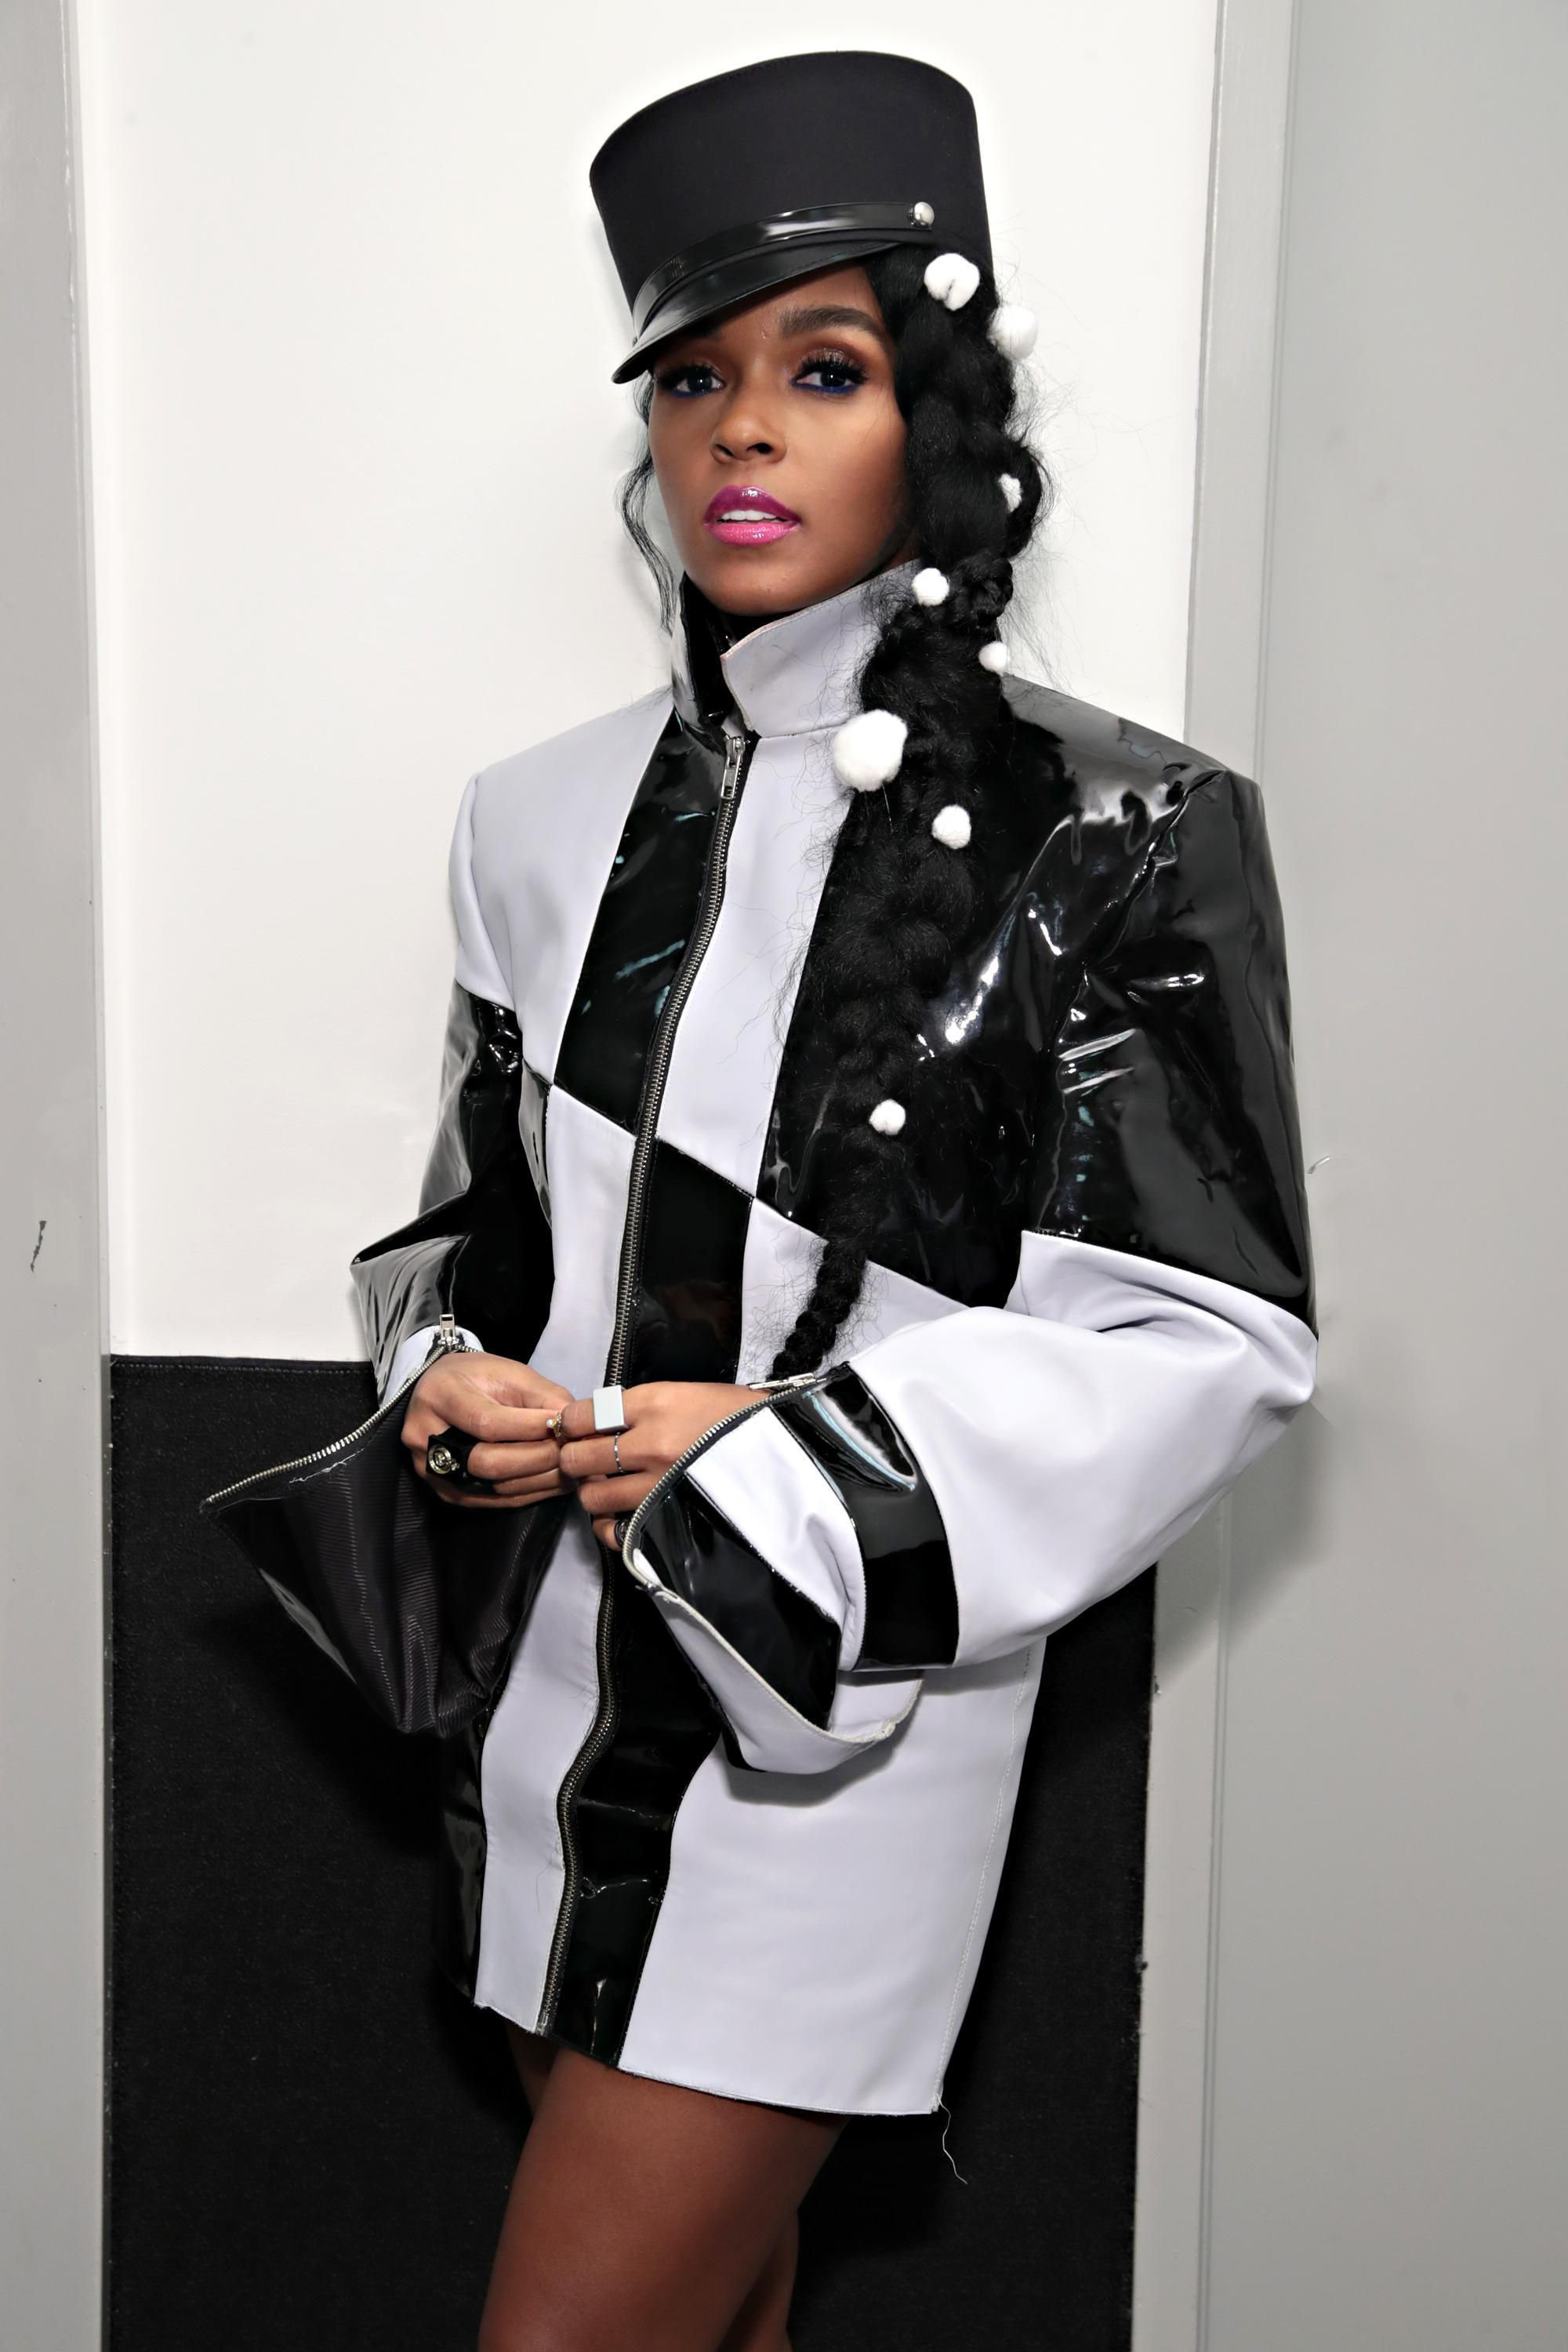 Recording artist/ actress Janelle Monae attends the 'Dirty Computer' screening at The Film Society of Lincoln Center, Walter Reade Theatre on April 23, 2018 in New York City.